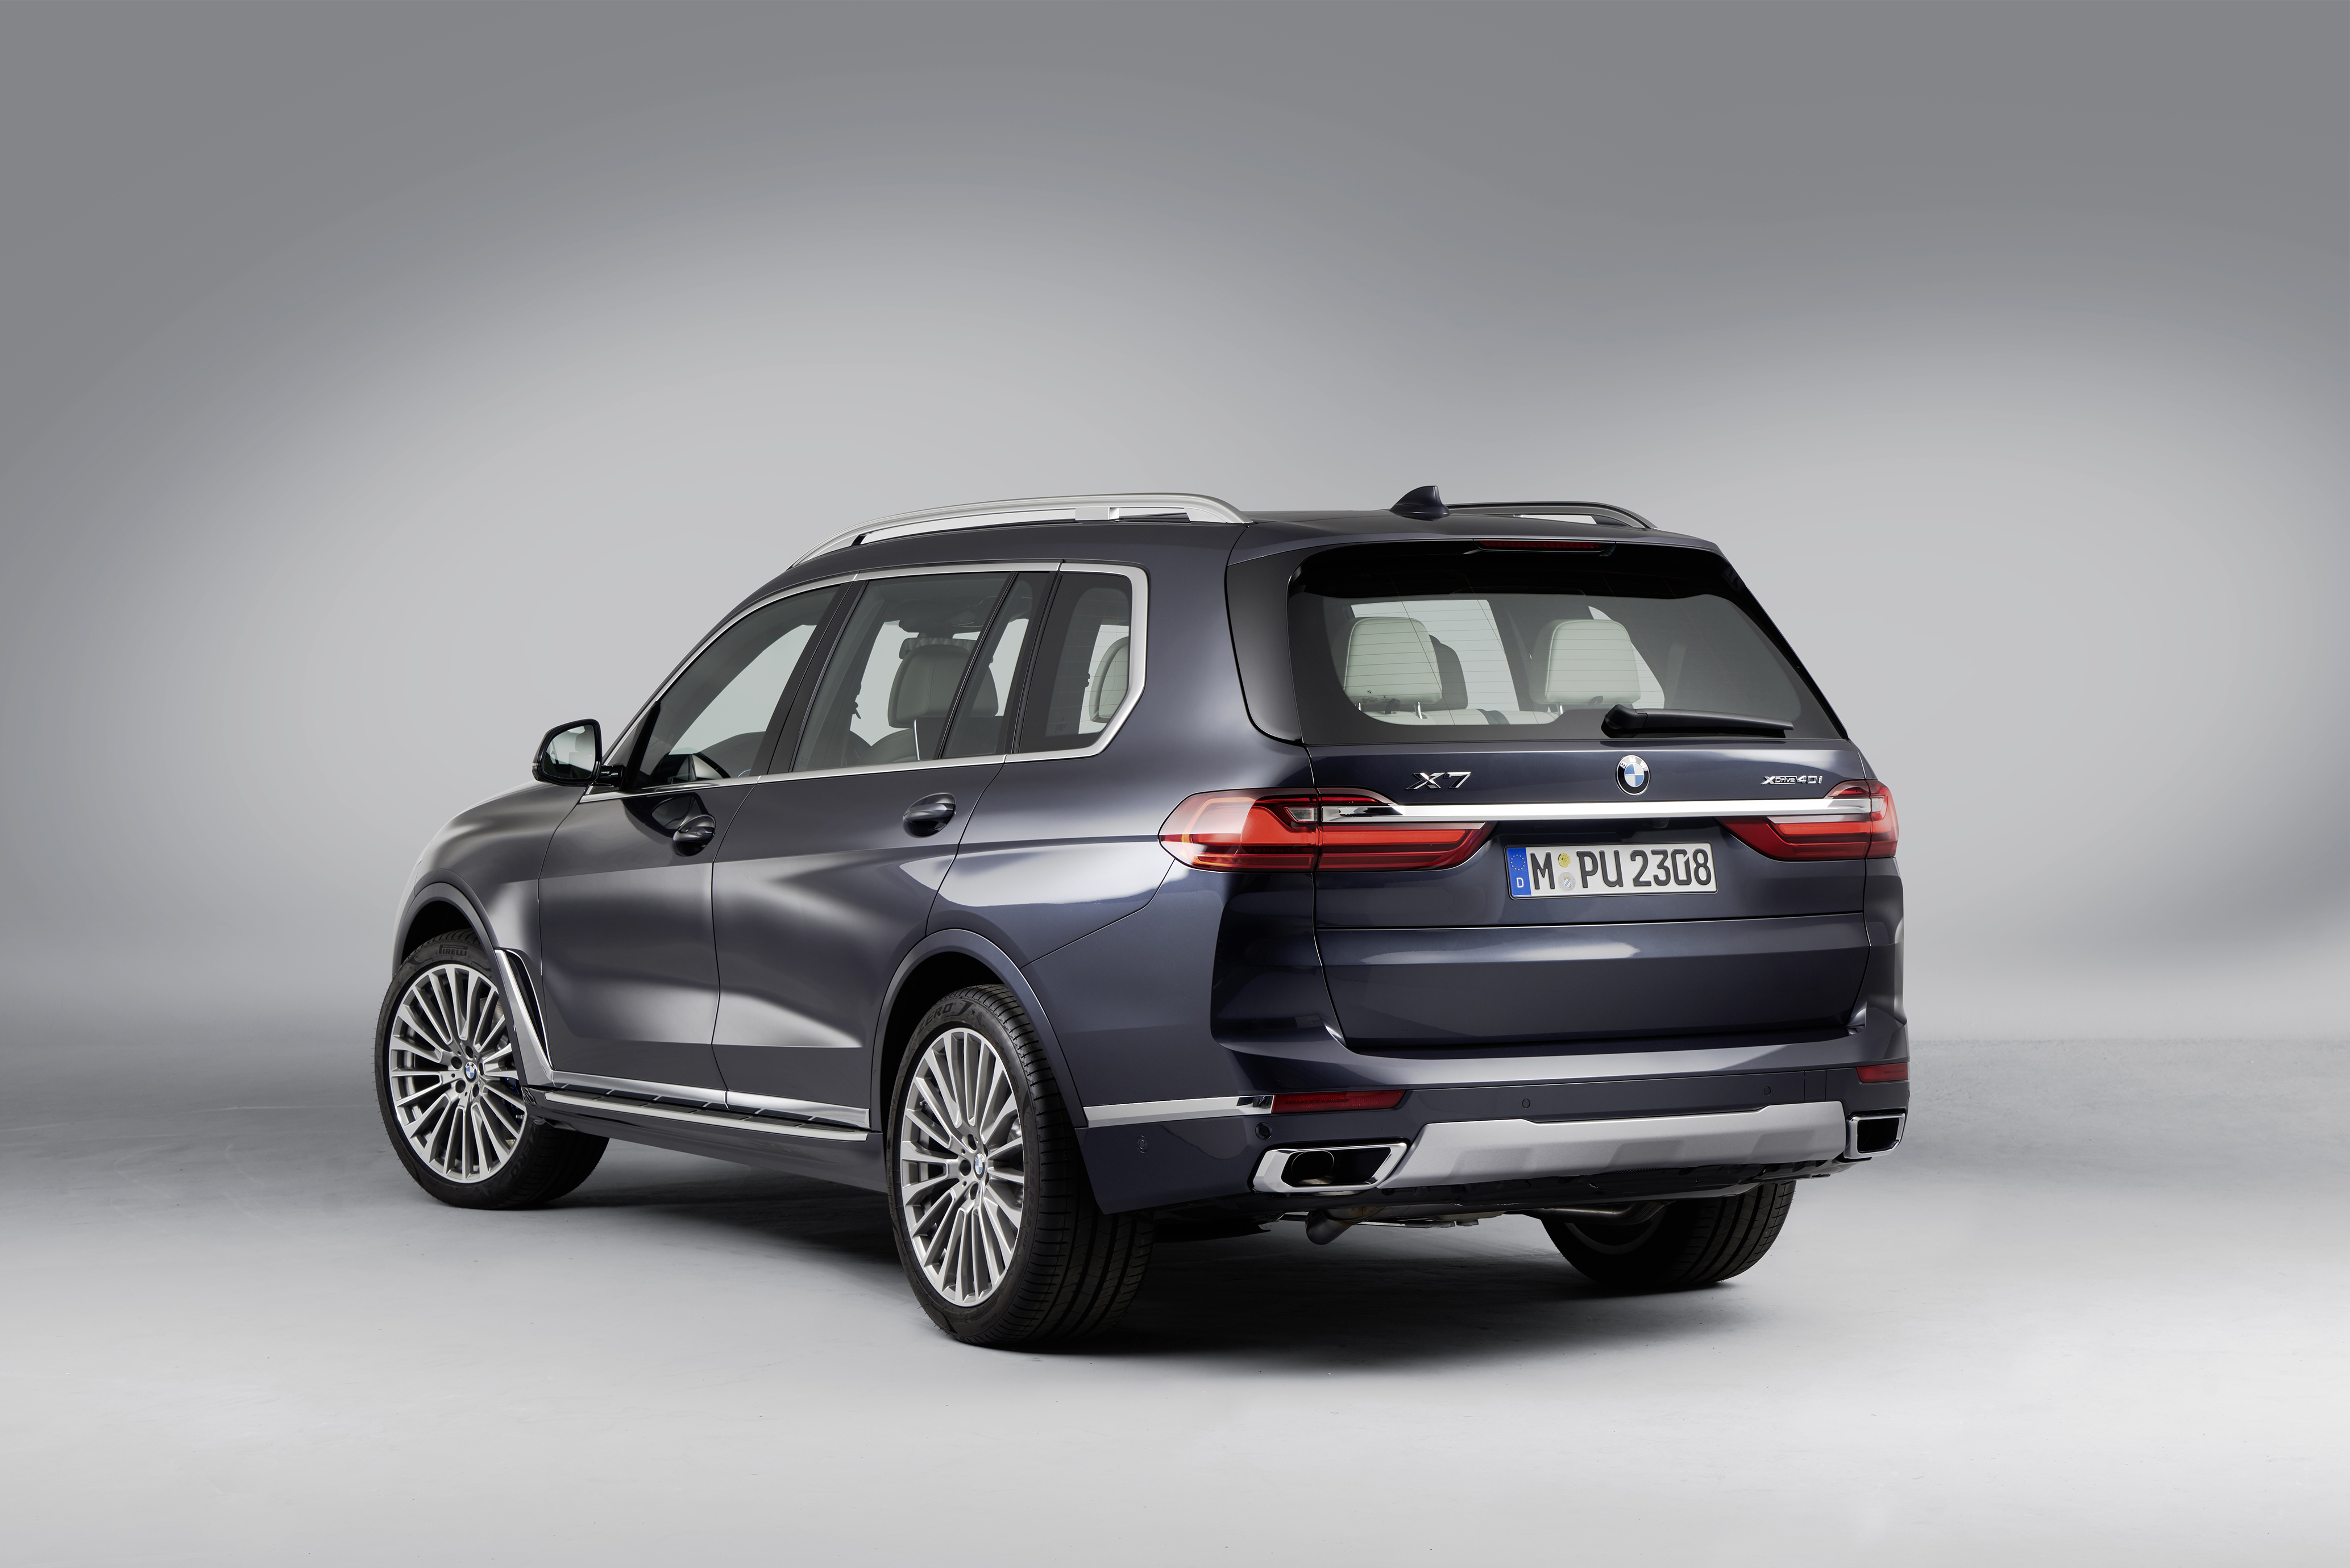 2019 BMW X7 (G07) Official Thread: Information, Specs